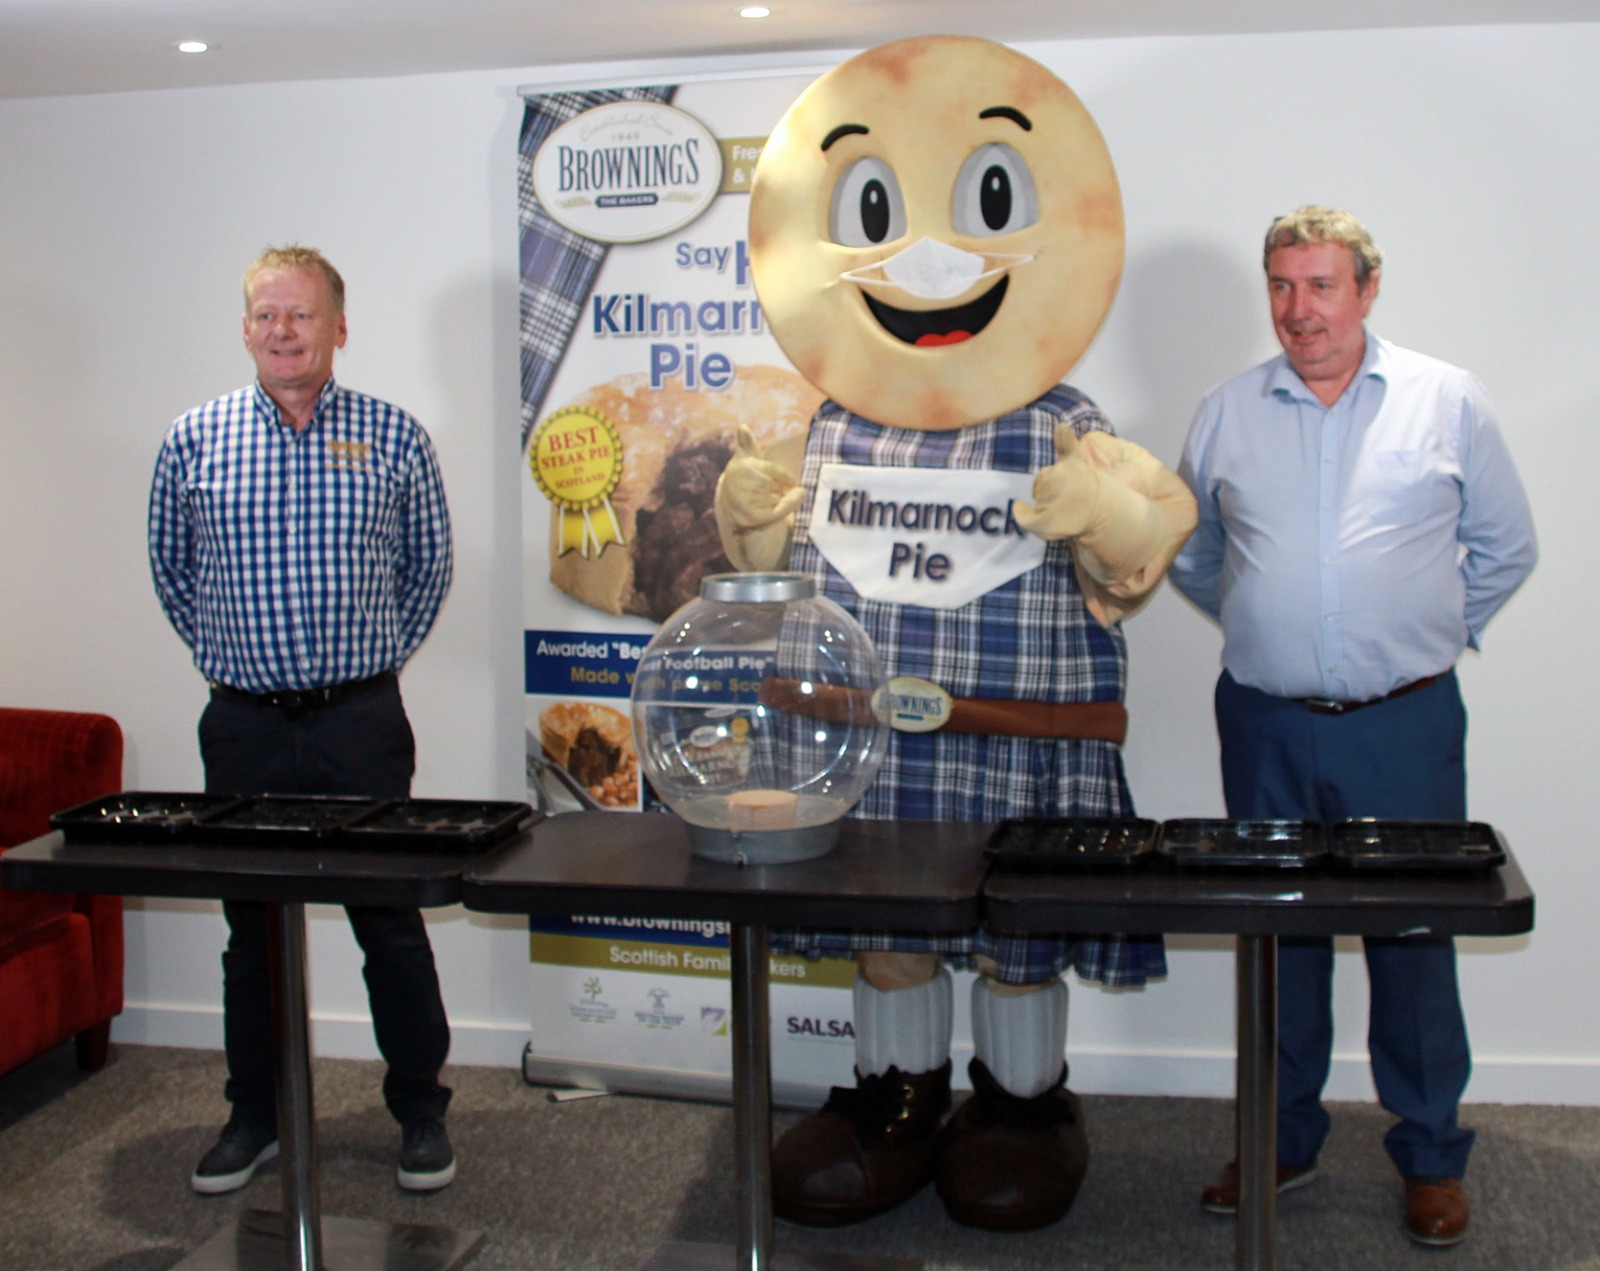 Say Hi to The Kilmarnock Pie…West Of Scotland Football League Cup